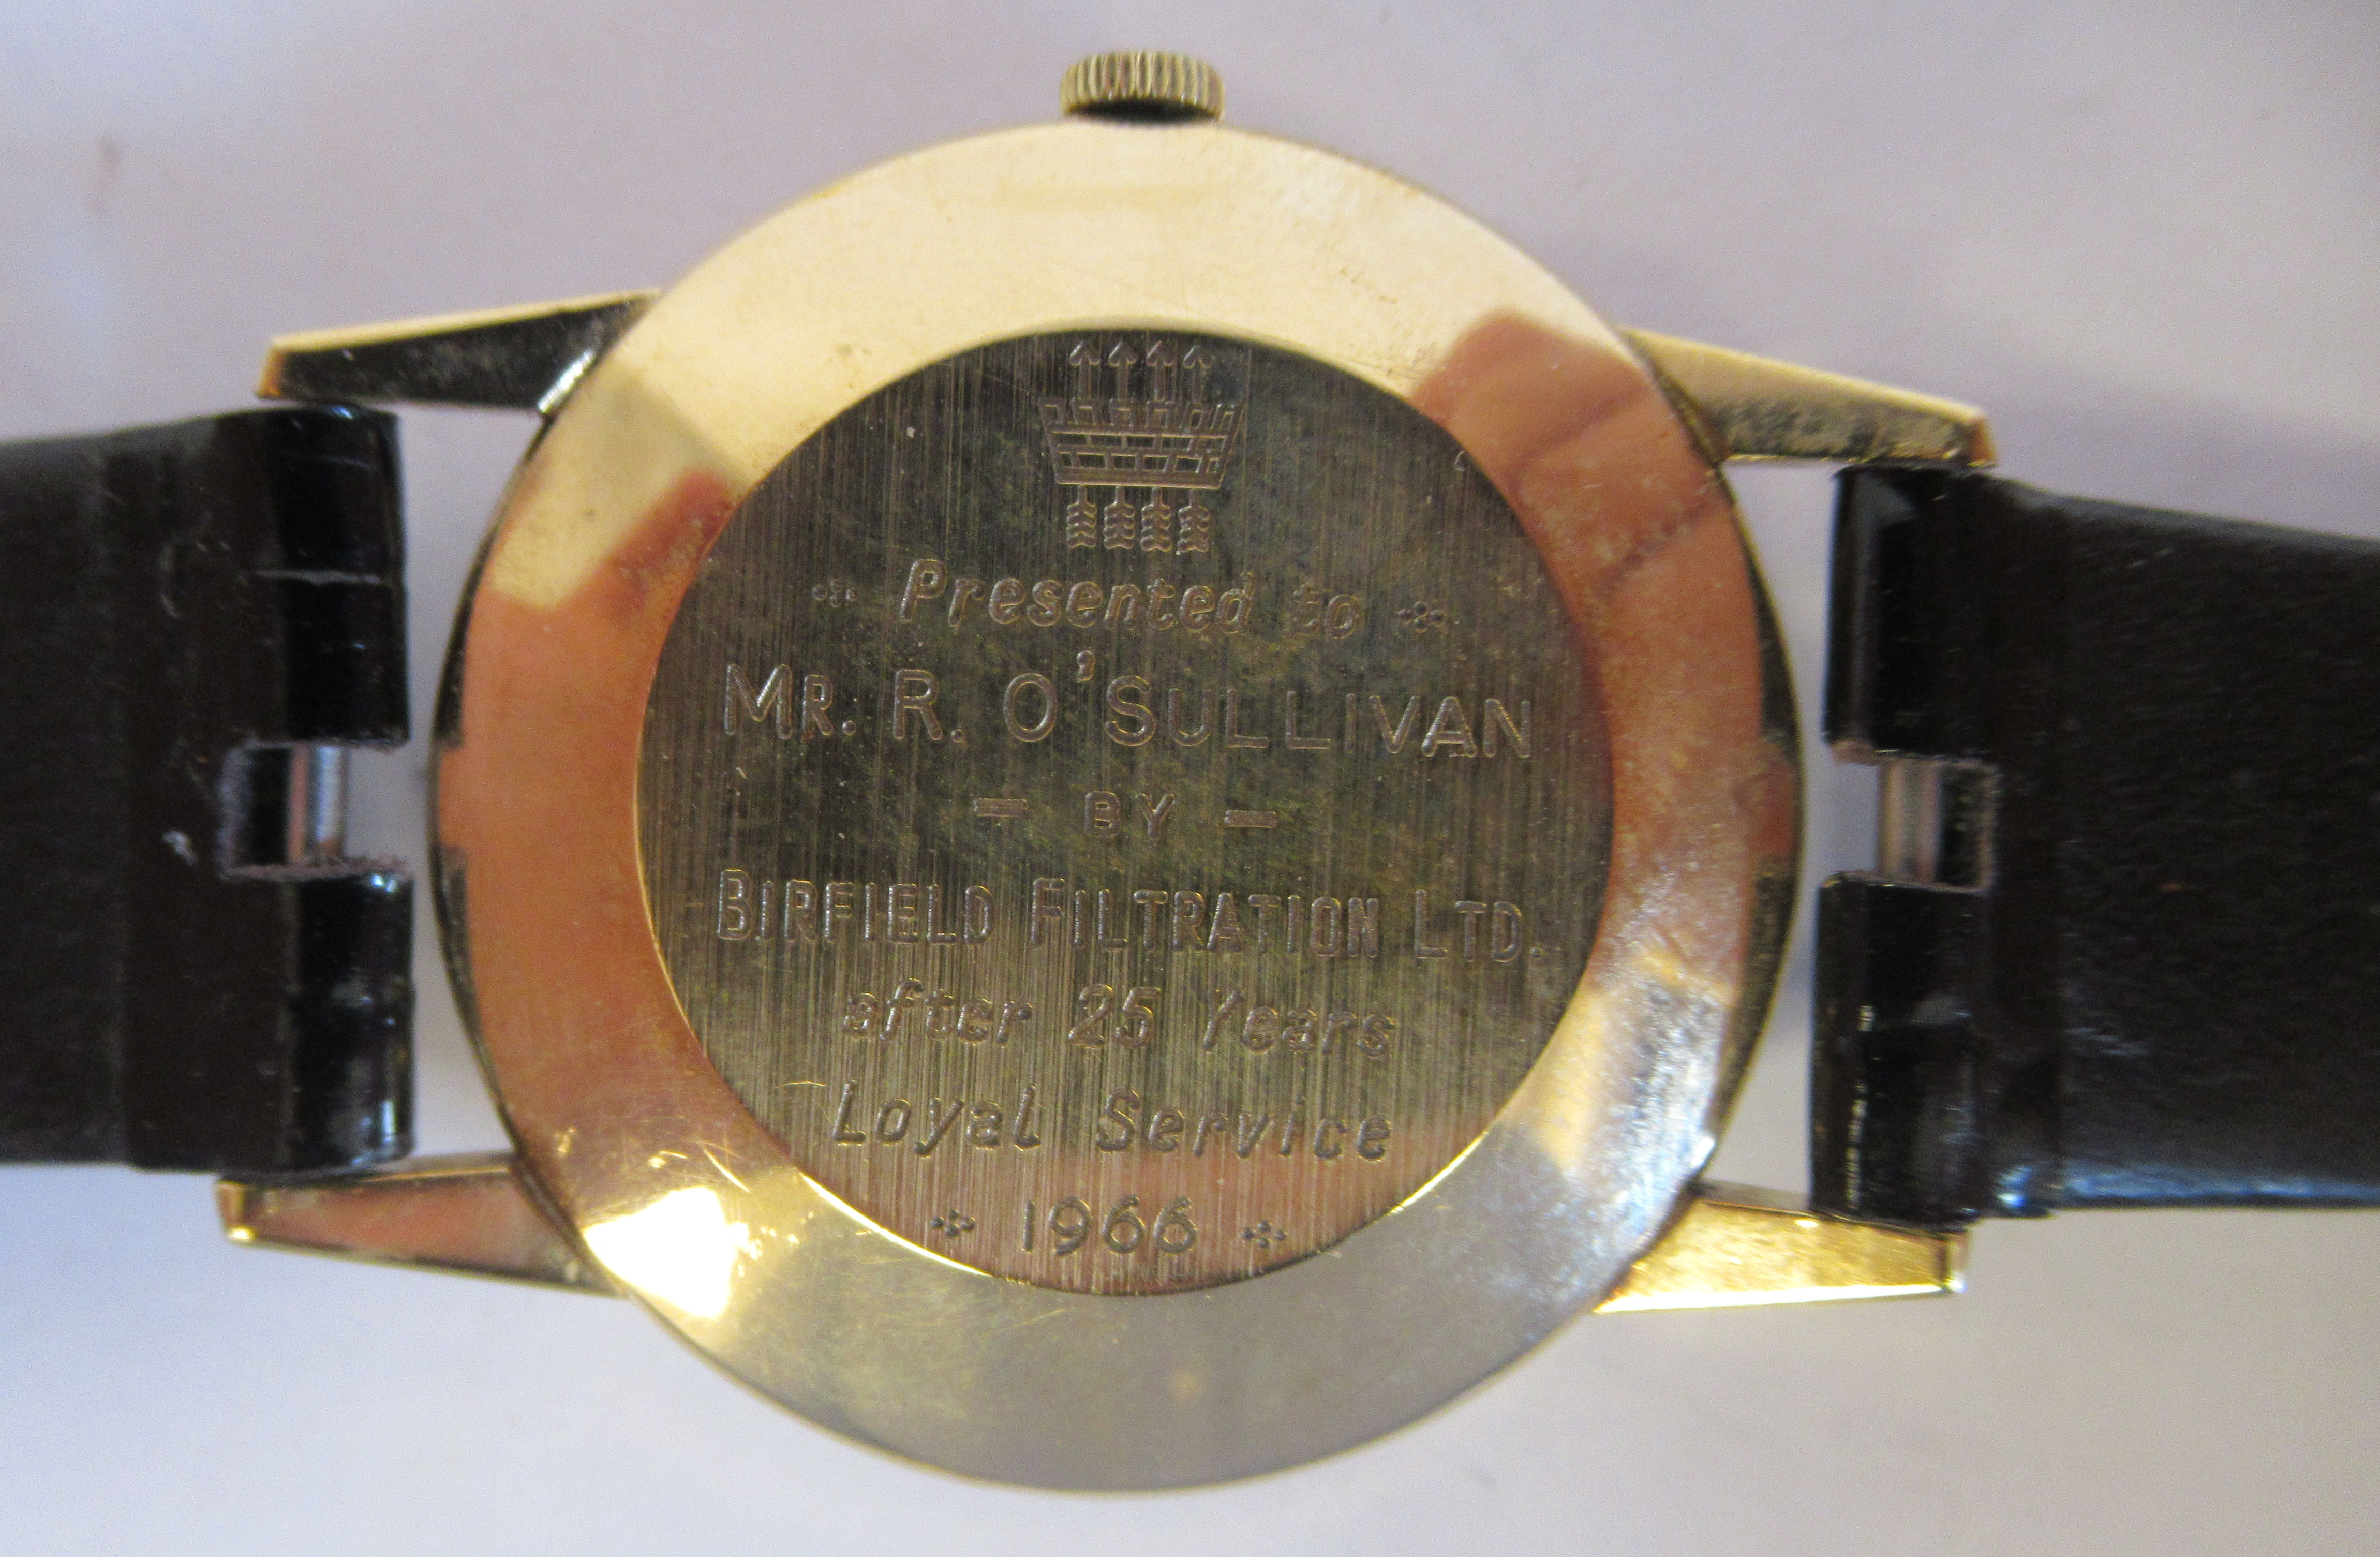 A 1966 Giraird-Perregaux 9ct gold cased wristwatch, the movement with sweeping seconds, faced by - Image 4 of 5